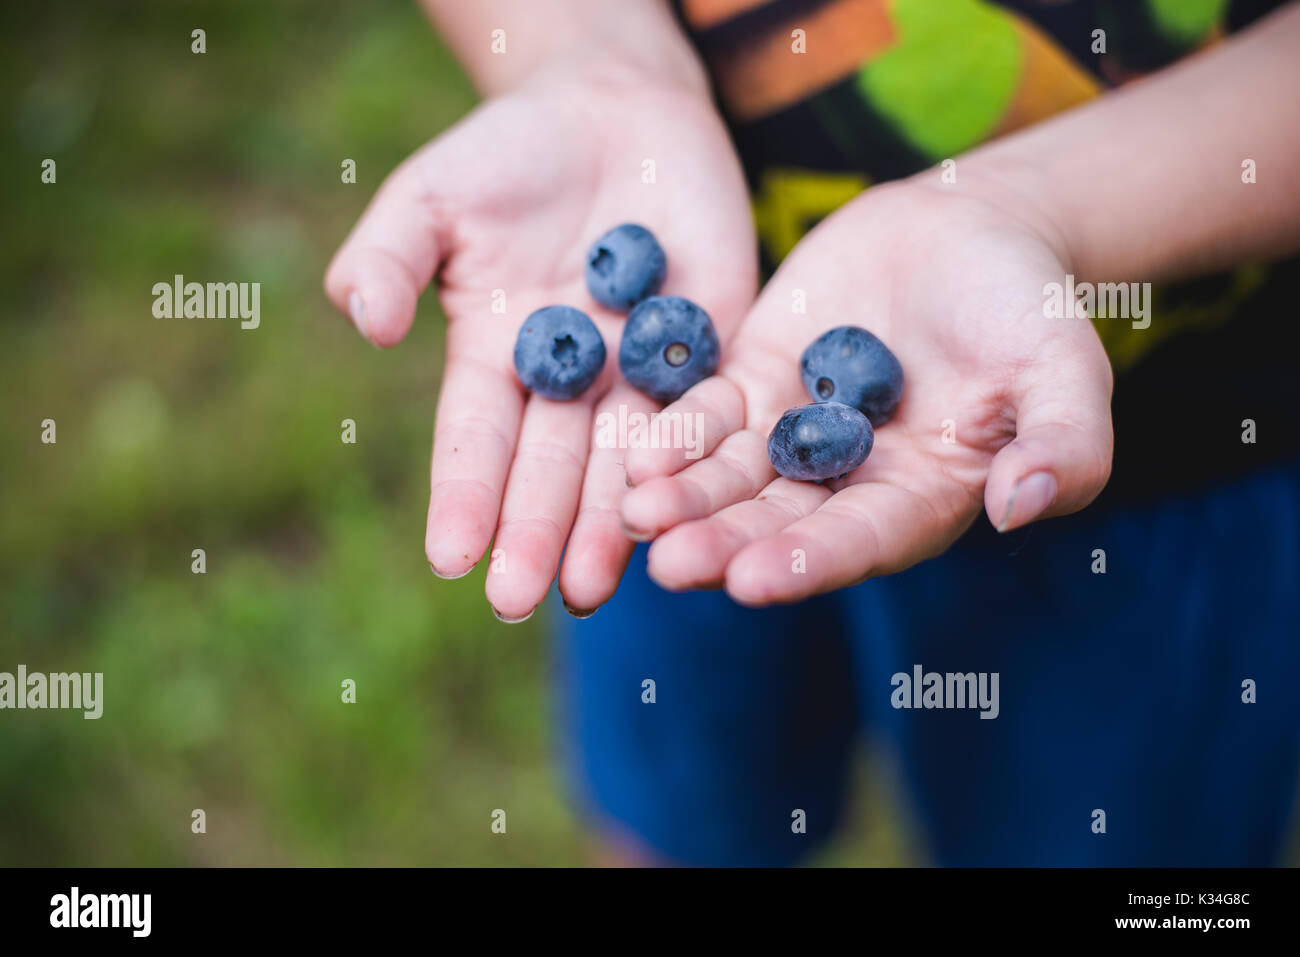 Child hands holding fresh blueberries from a farm. - Stock Image